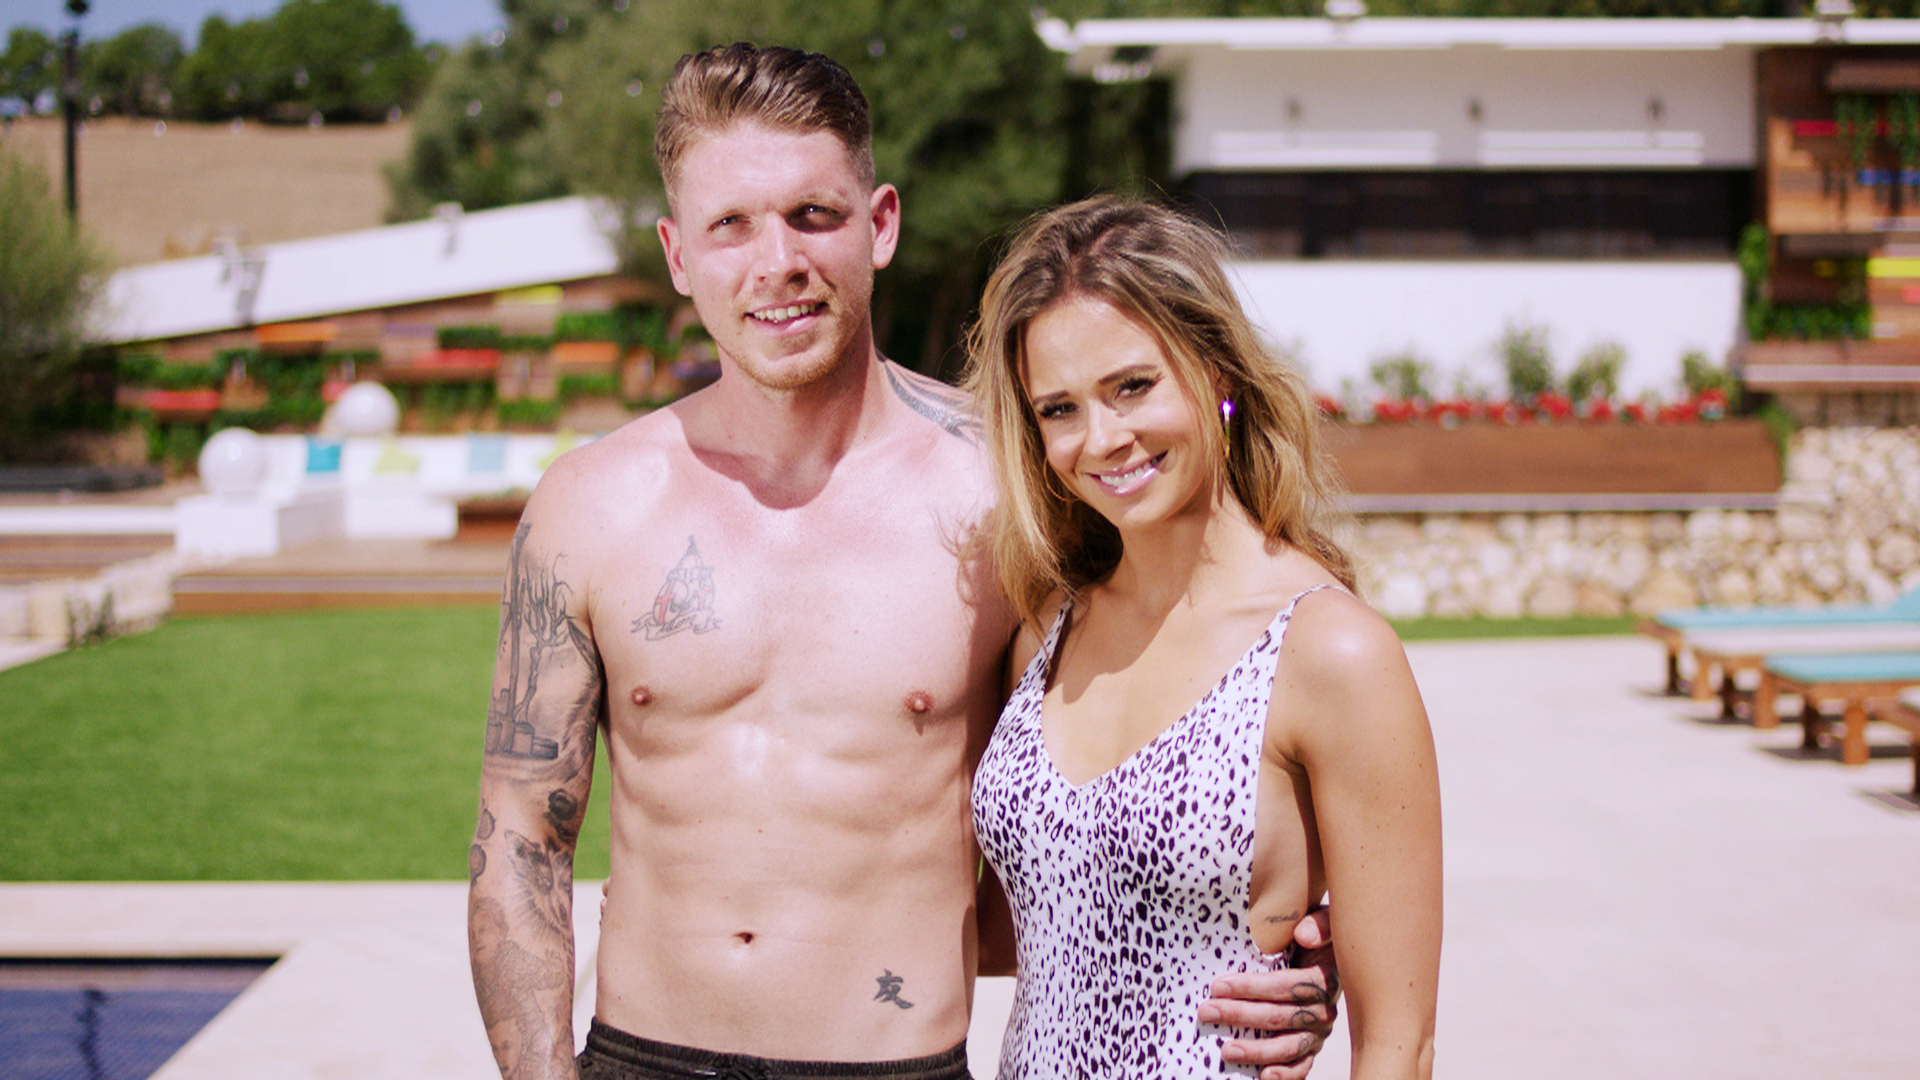 Love Island wedding bells? Craig Lawson admits he would propose to co-star Camilla Thurlow